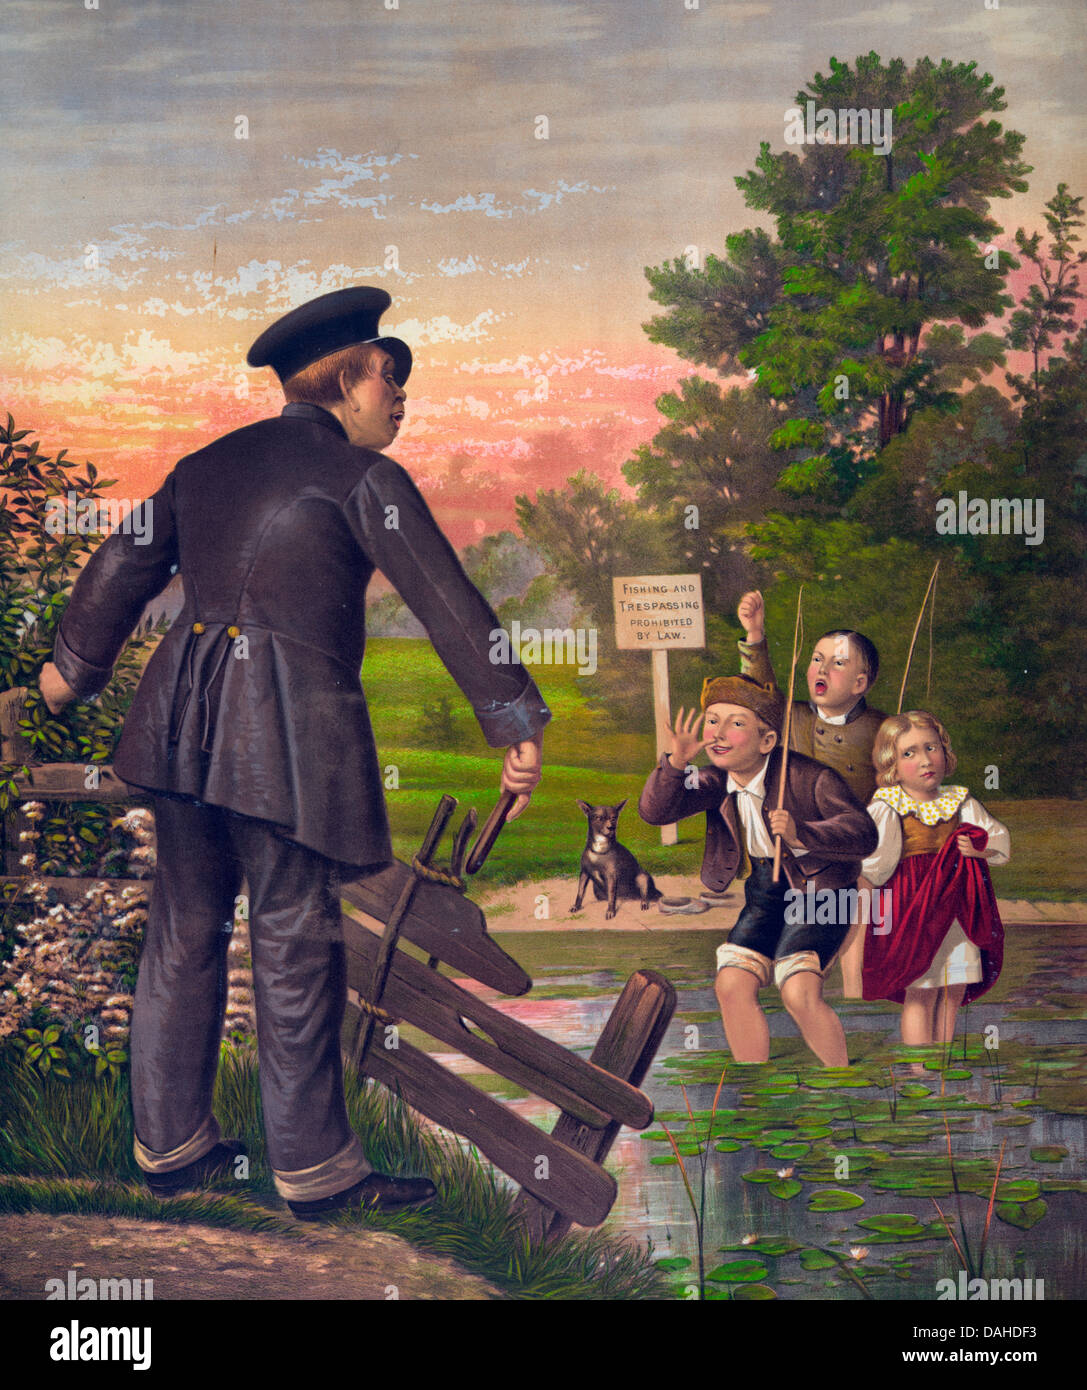 What are you going to do about it - Children in a restricted area taunt a security guard - Stock Image